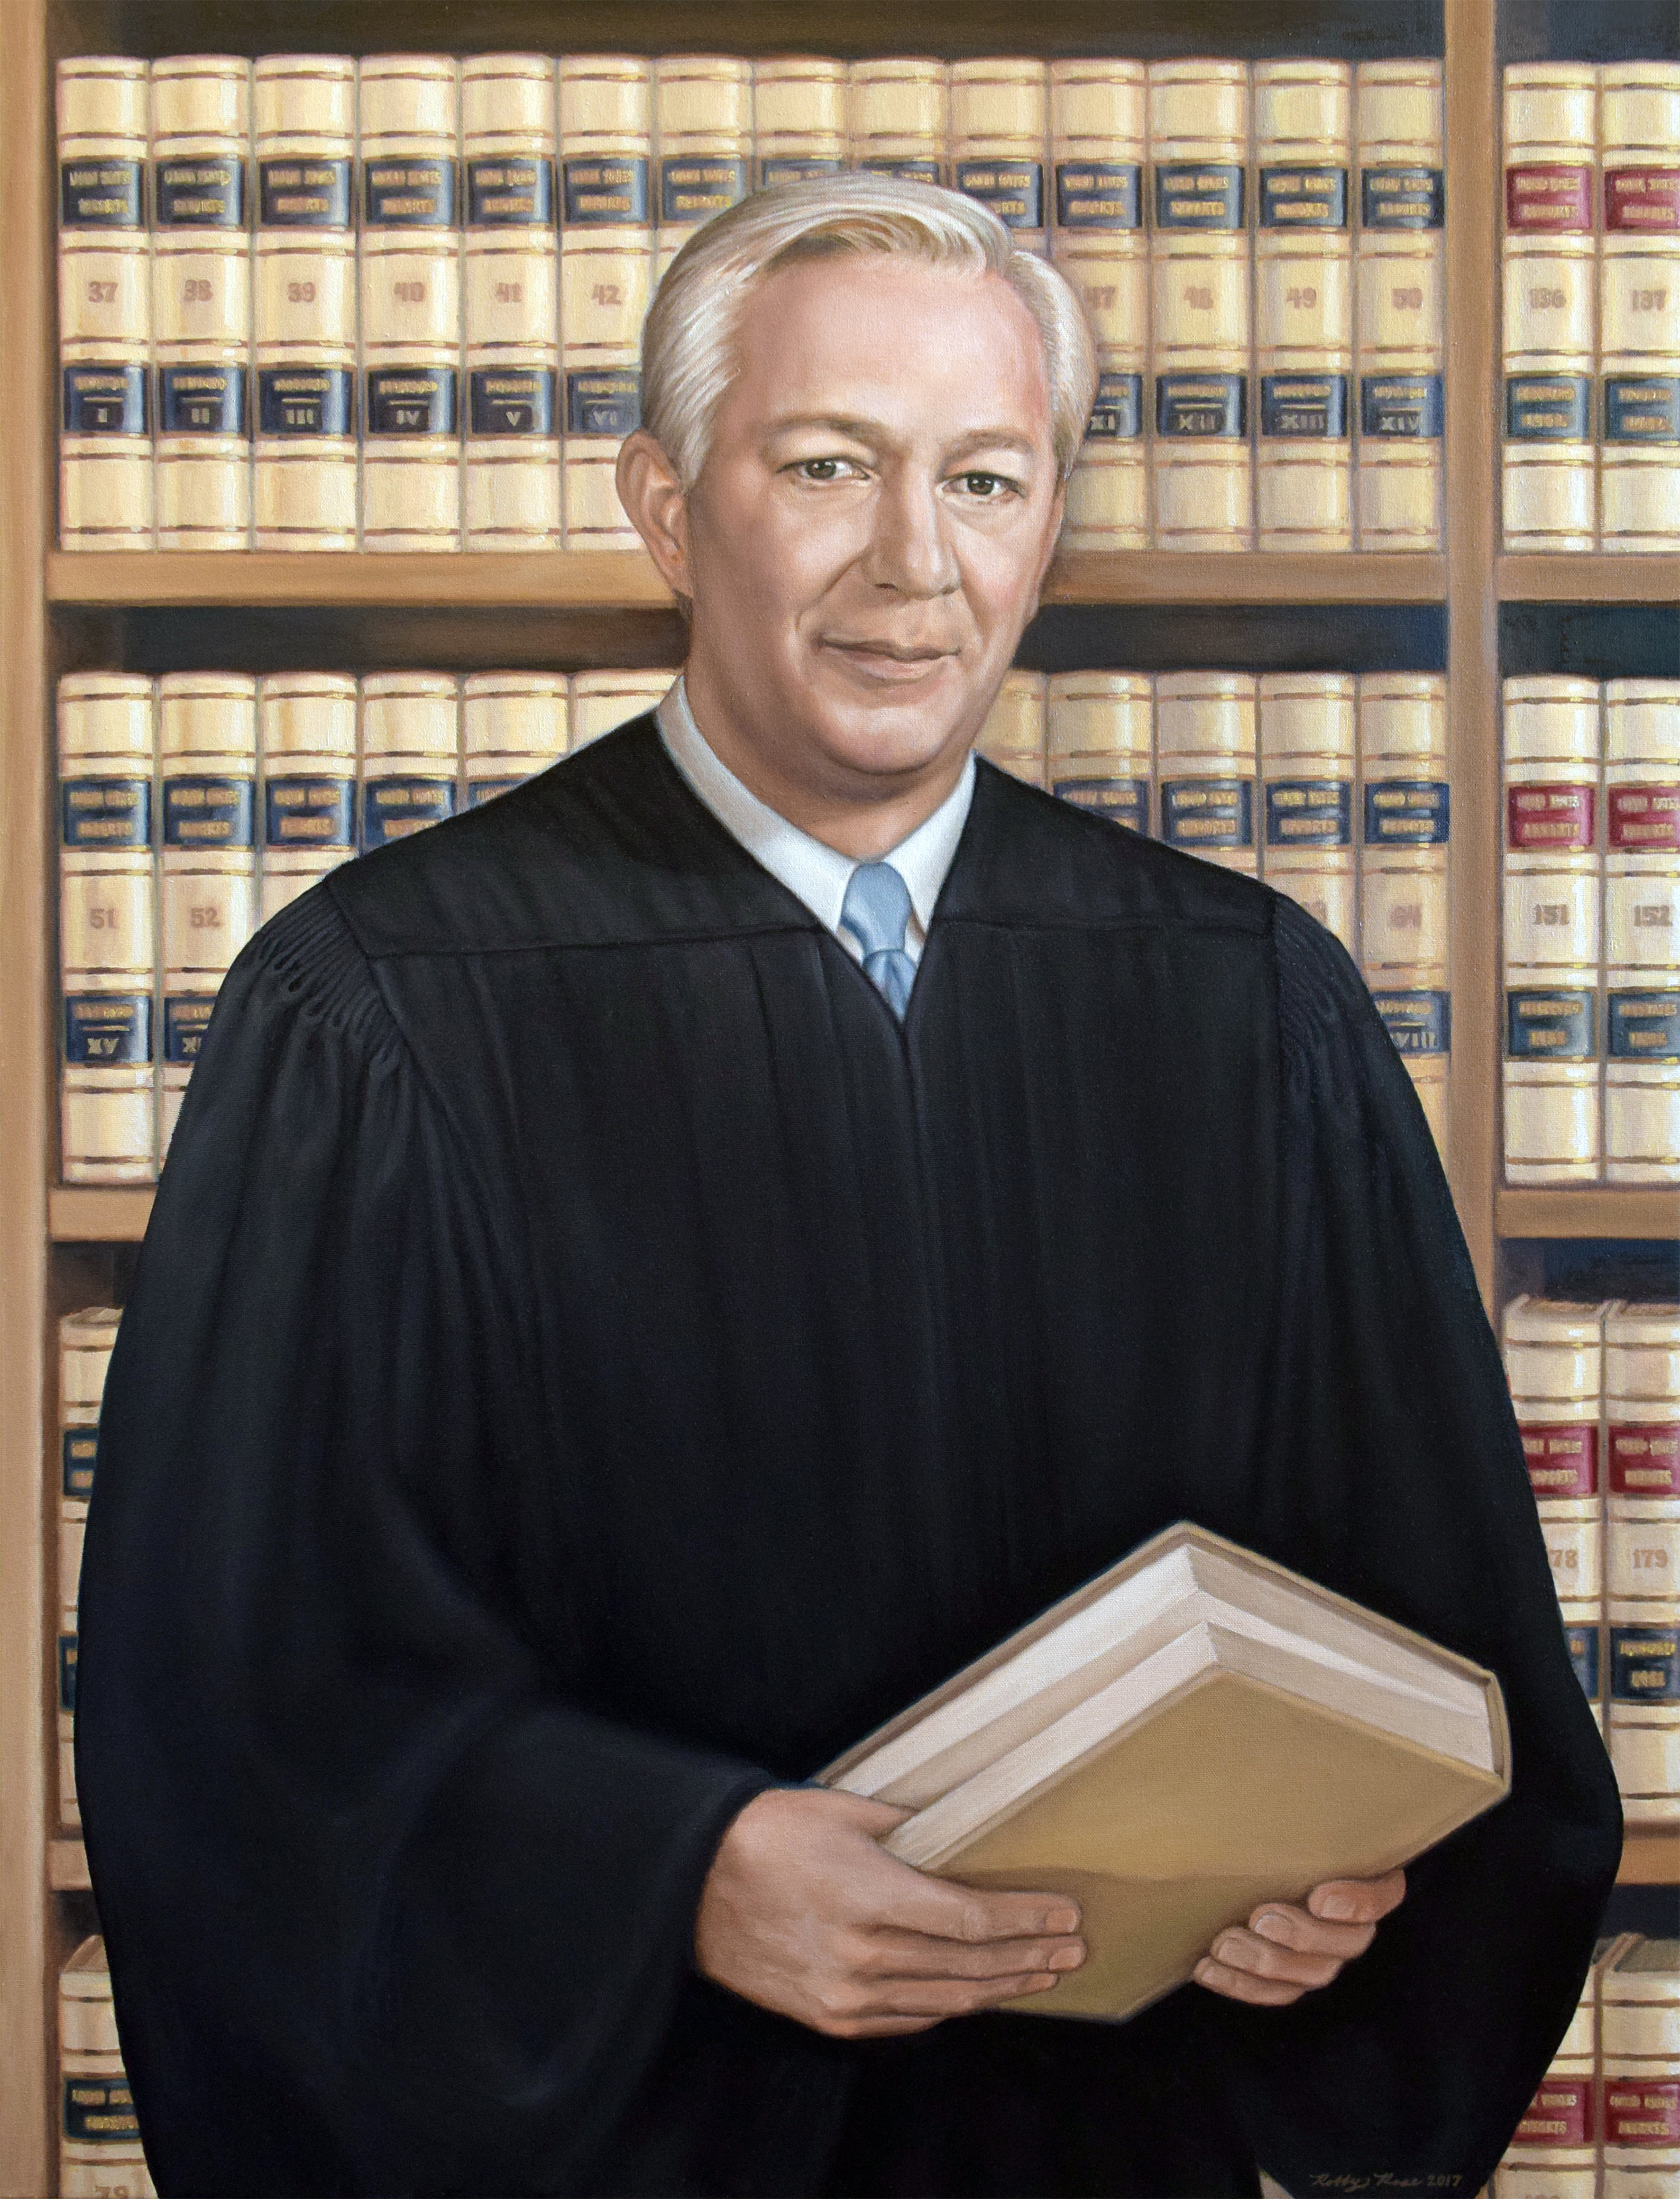 Hon. John A. Lahtinen, Justice of the New York State Supreme Court, Appellate Division, Third Department